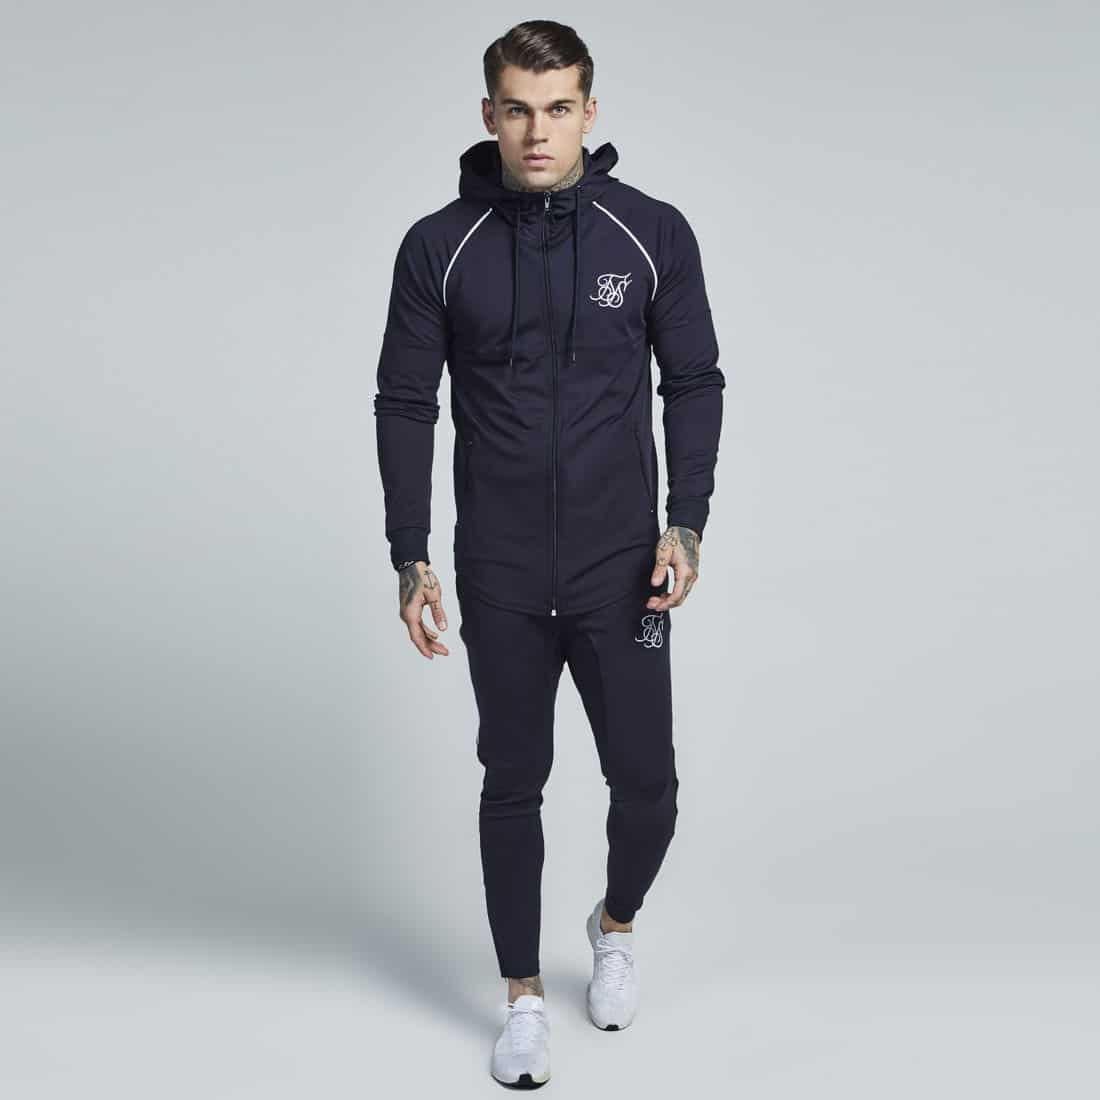 4475832e475a Sik Silk Zonal Poly Tracksuit Zipped Hoodie - Navy   White